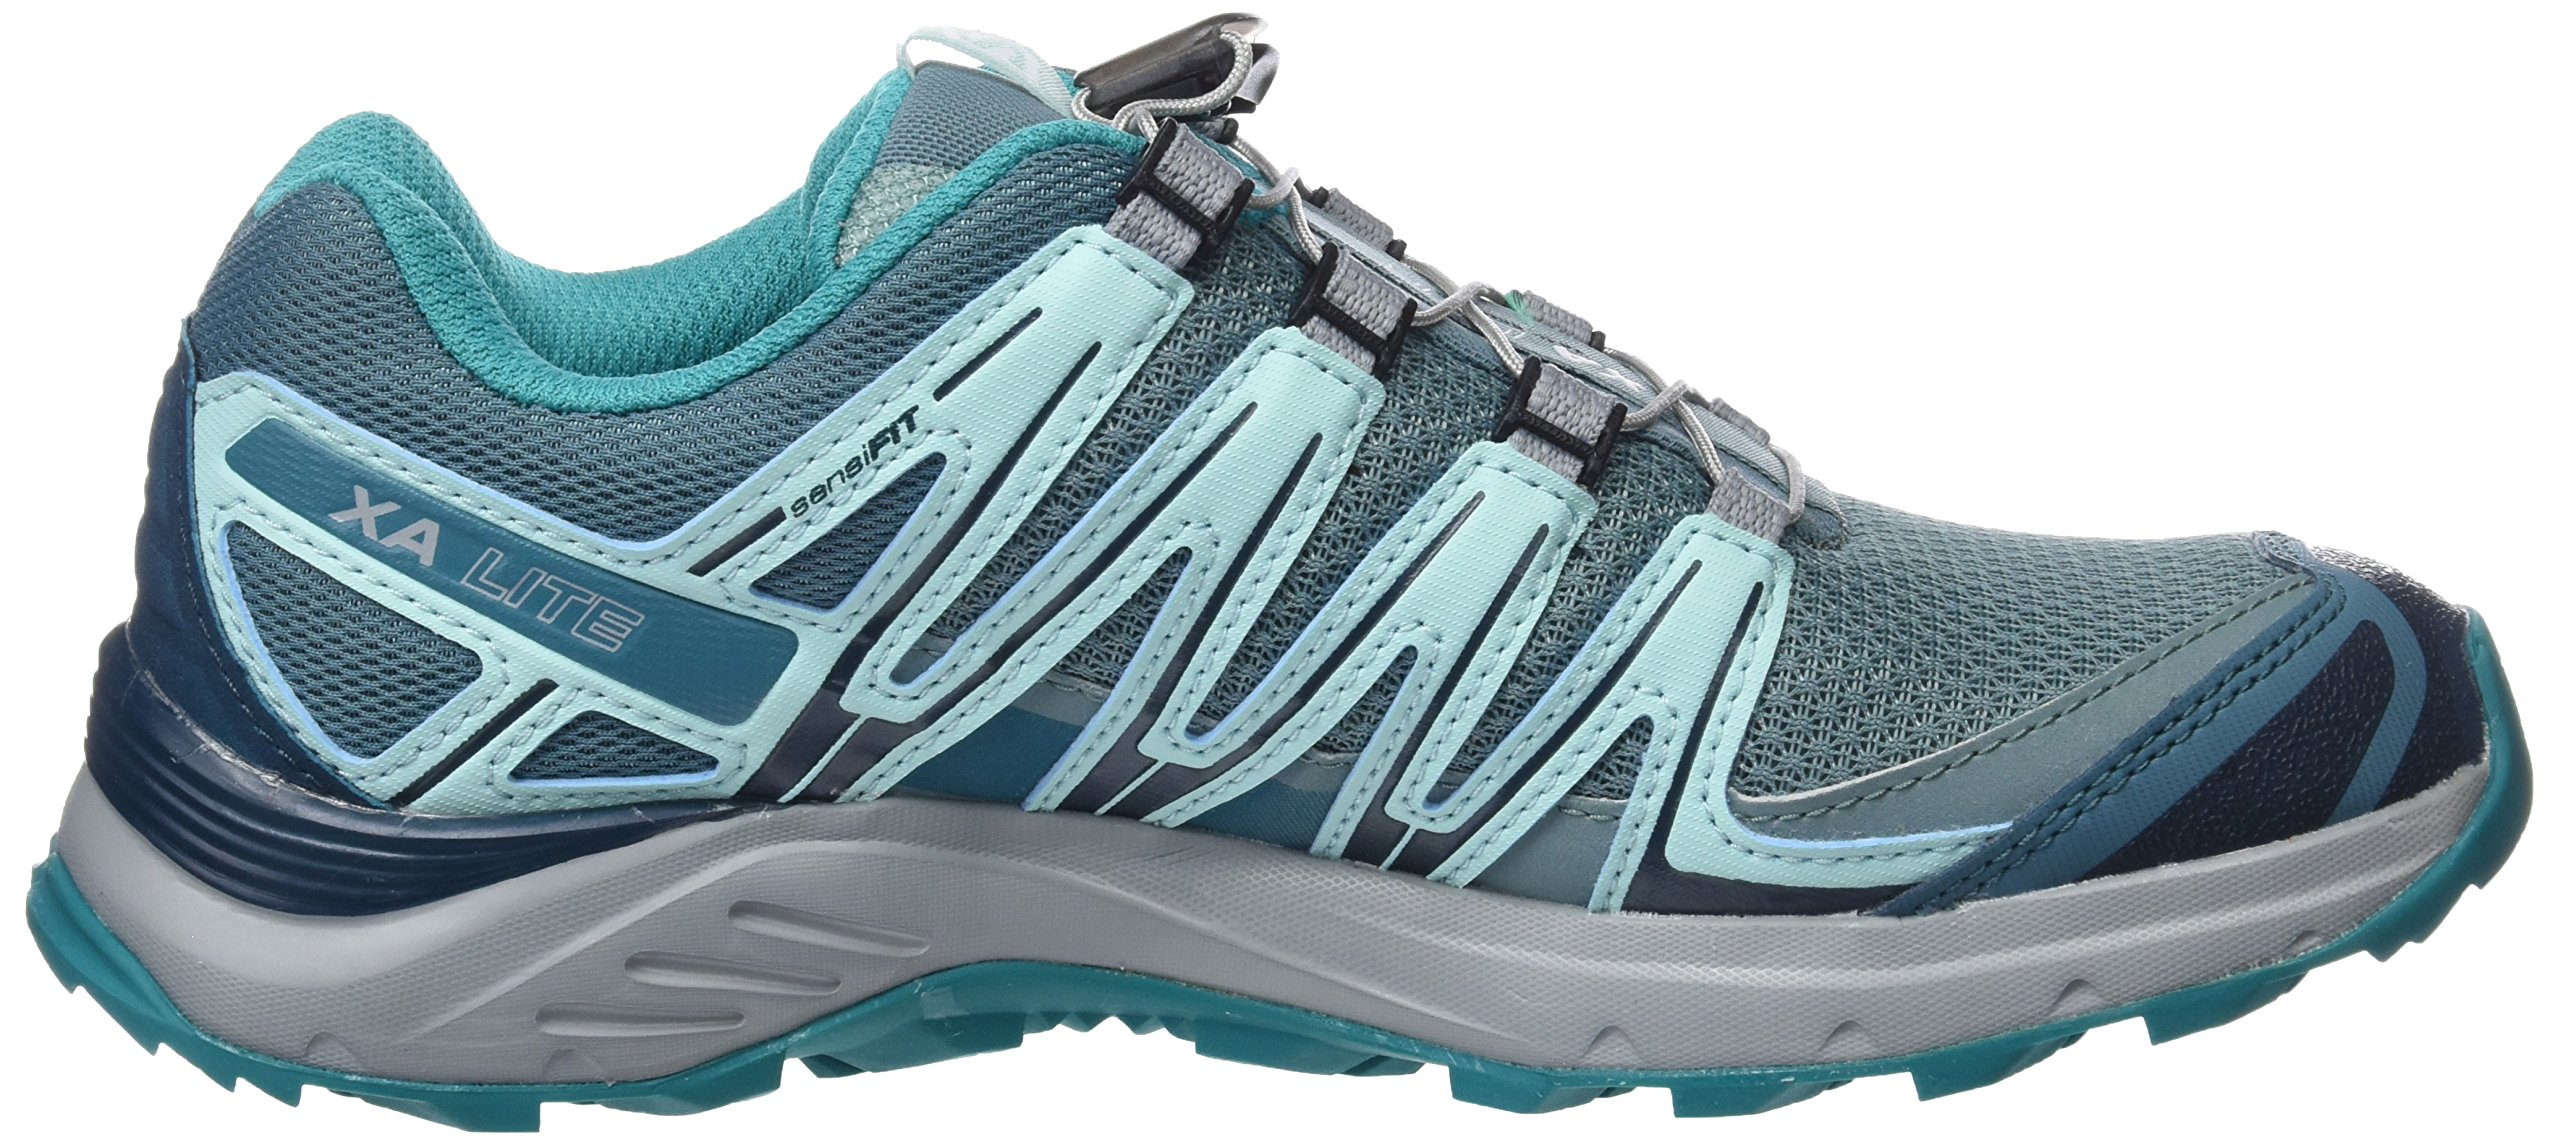 81fPiBp0xEL - SALOMON Women's Xa Lite W Trail Running Shoes